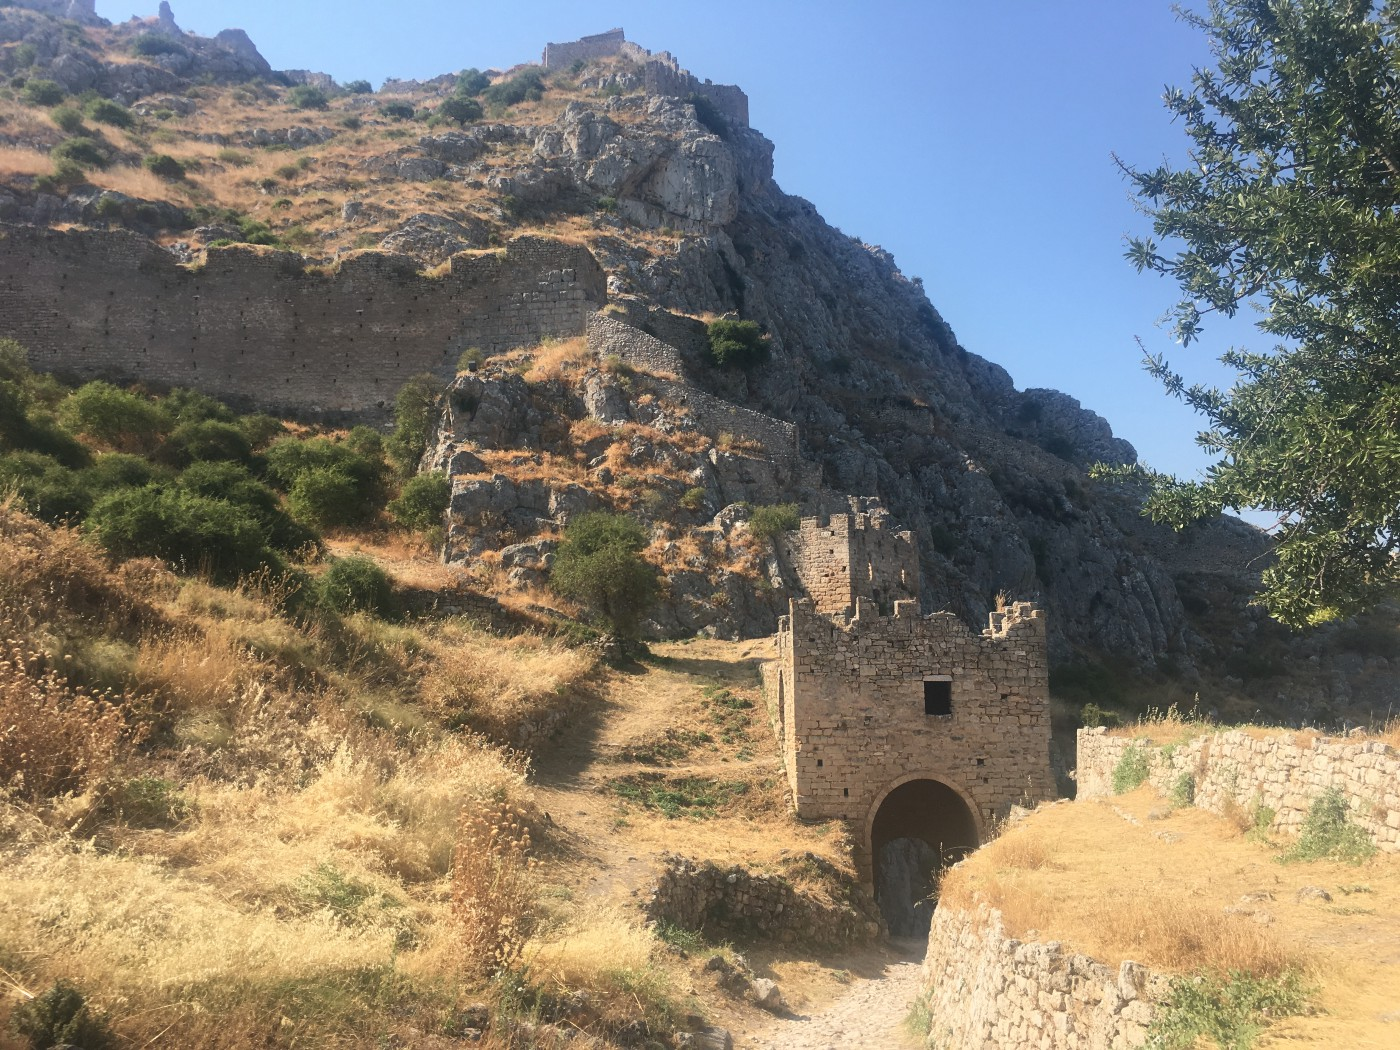 A view of battlements and ruined buildings atop Acrocorinth